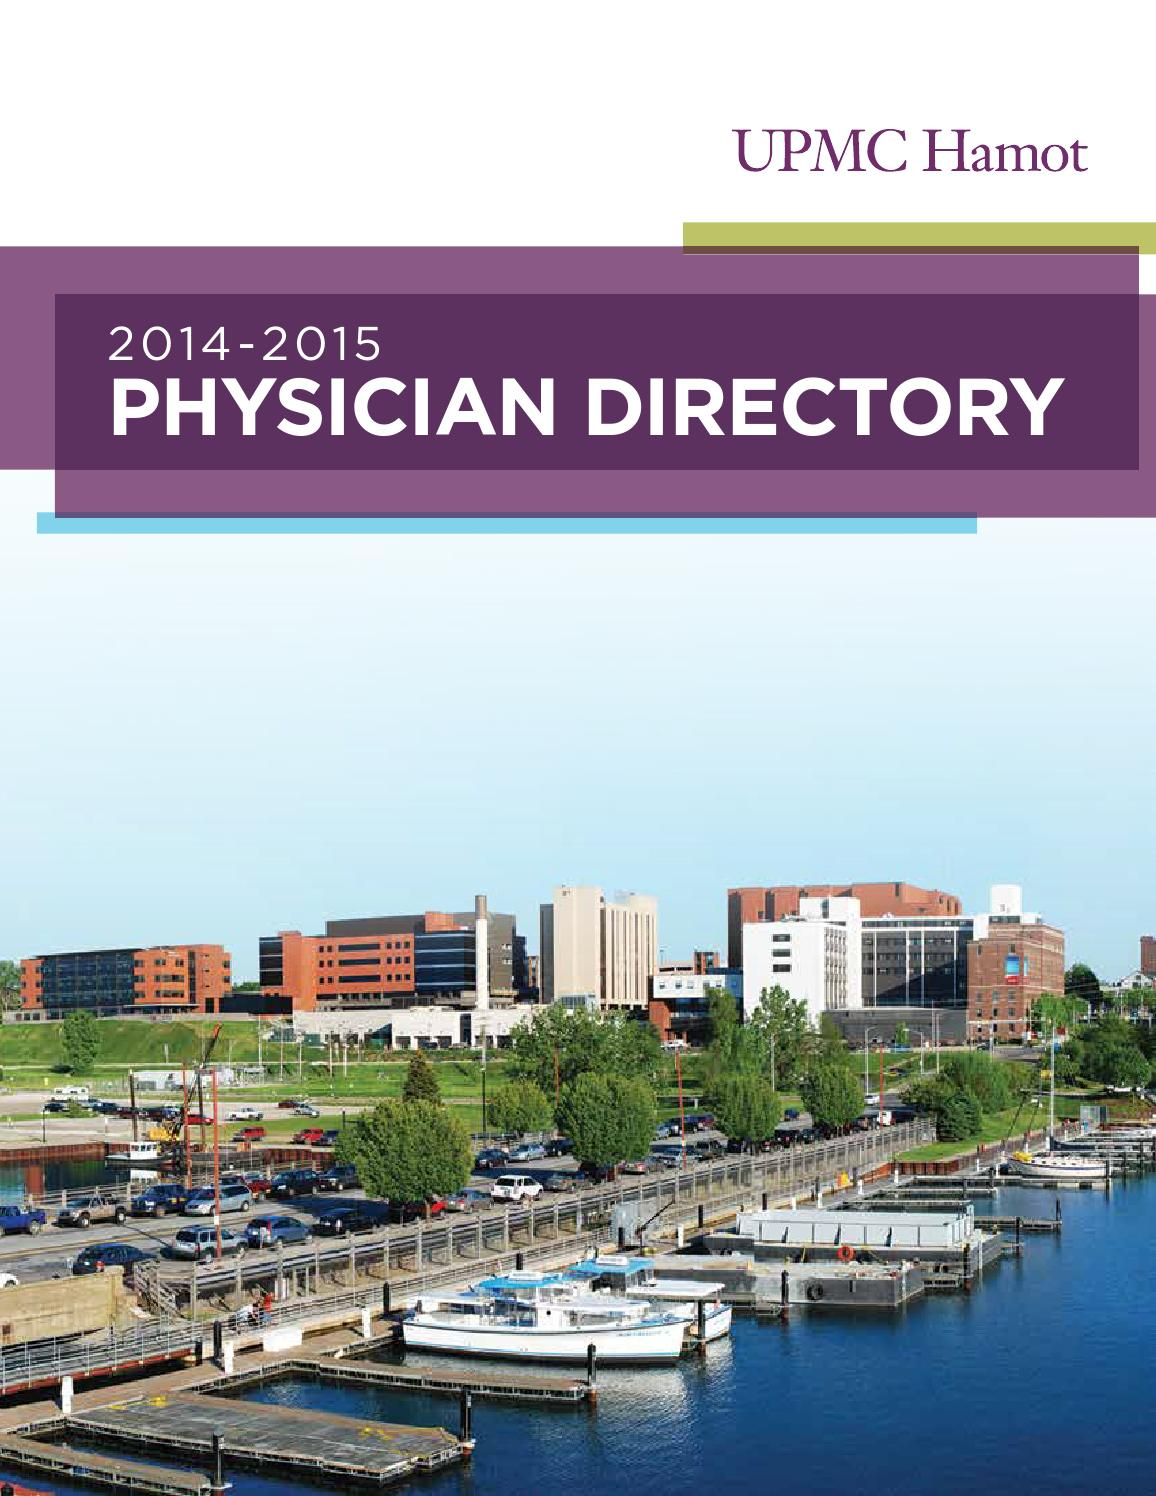 Upmc Hamot Physician Directory 2014 2015 By Tungsten Creative Group Issuu